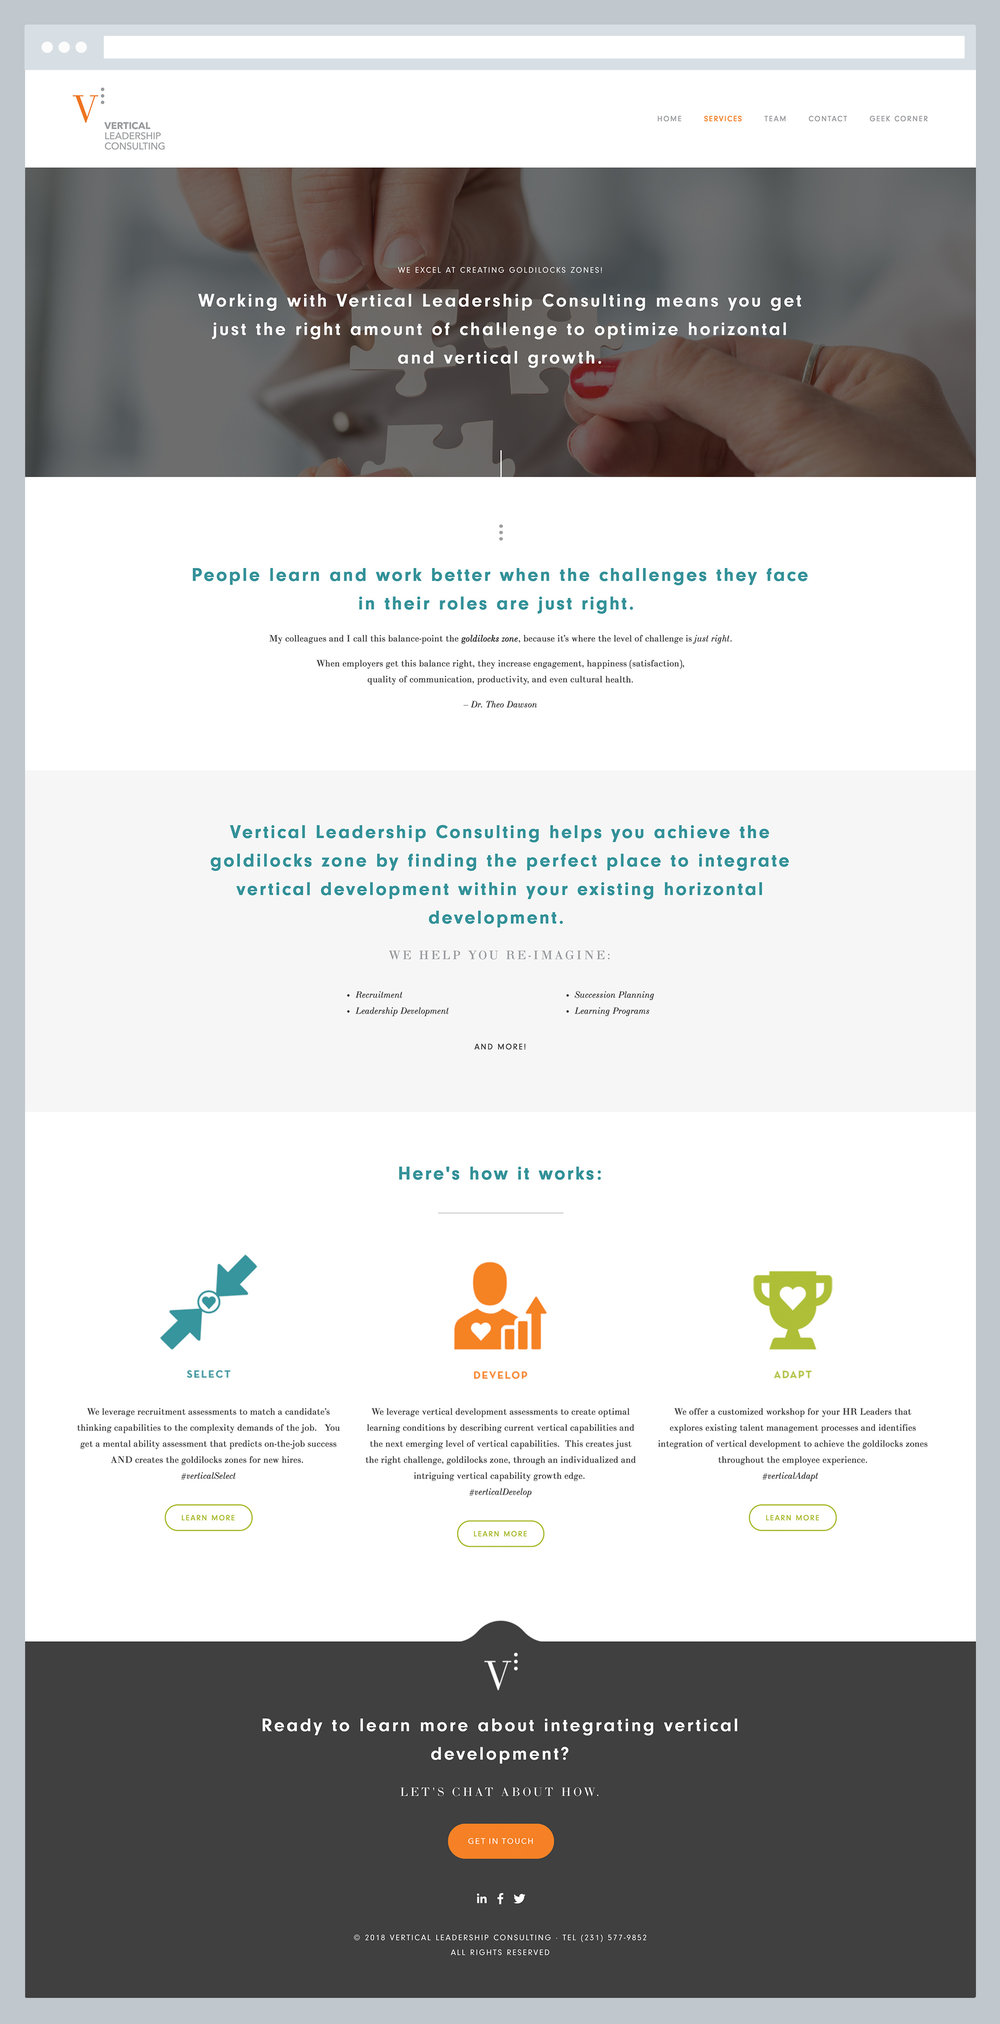 Vertical Leadership Consulting - Services Page, by Janessa Rae Design Creative in collaboration with Sweaty Wisdom